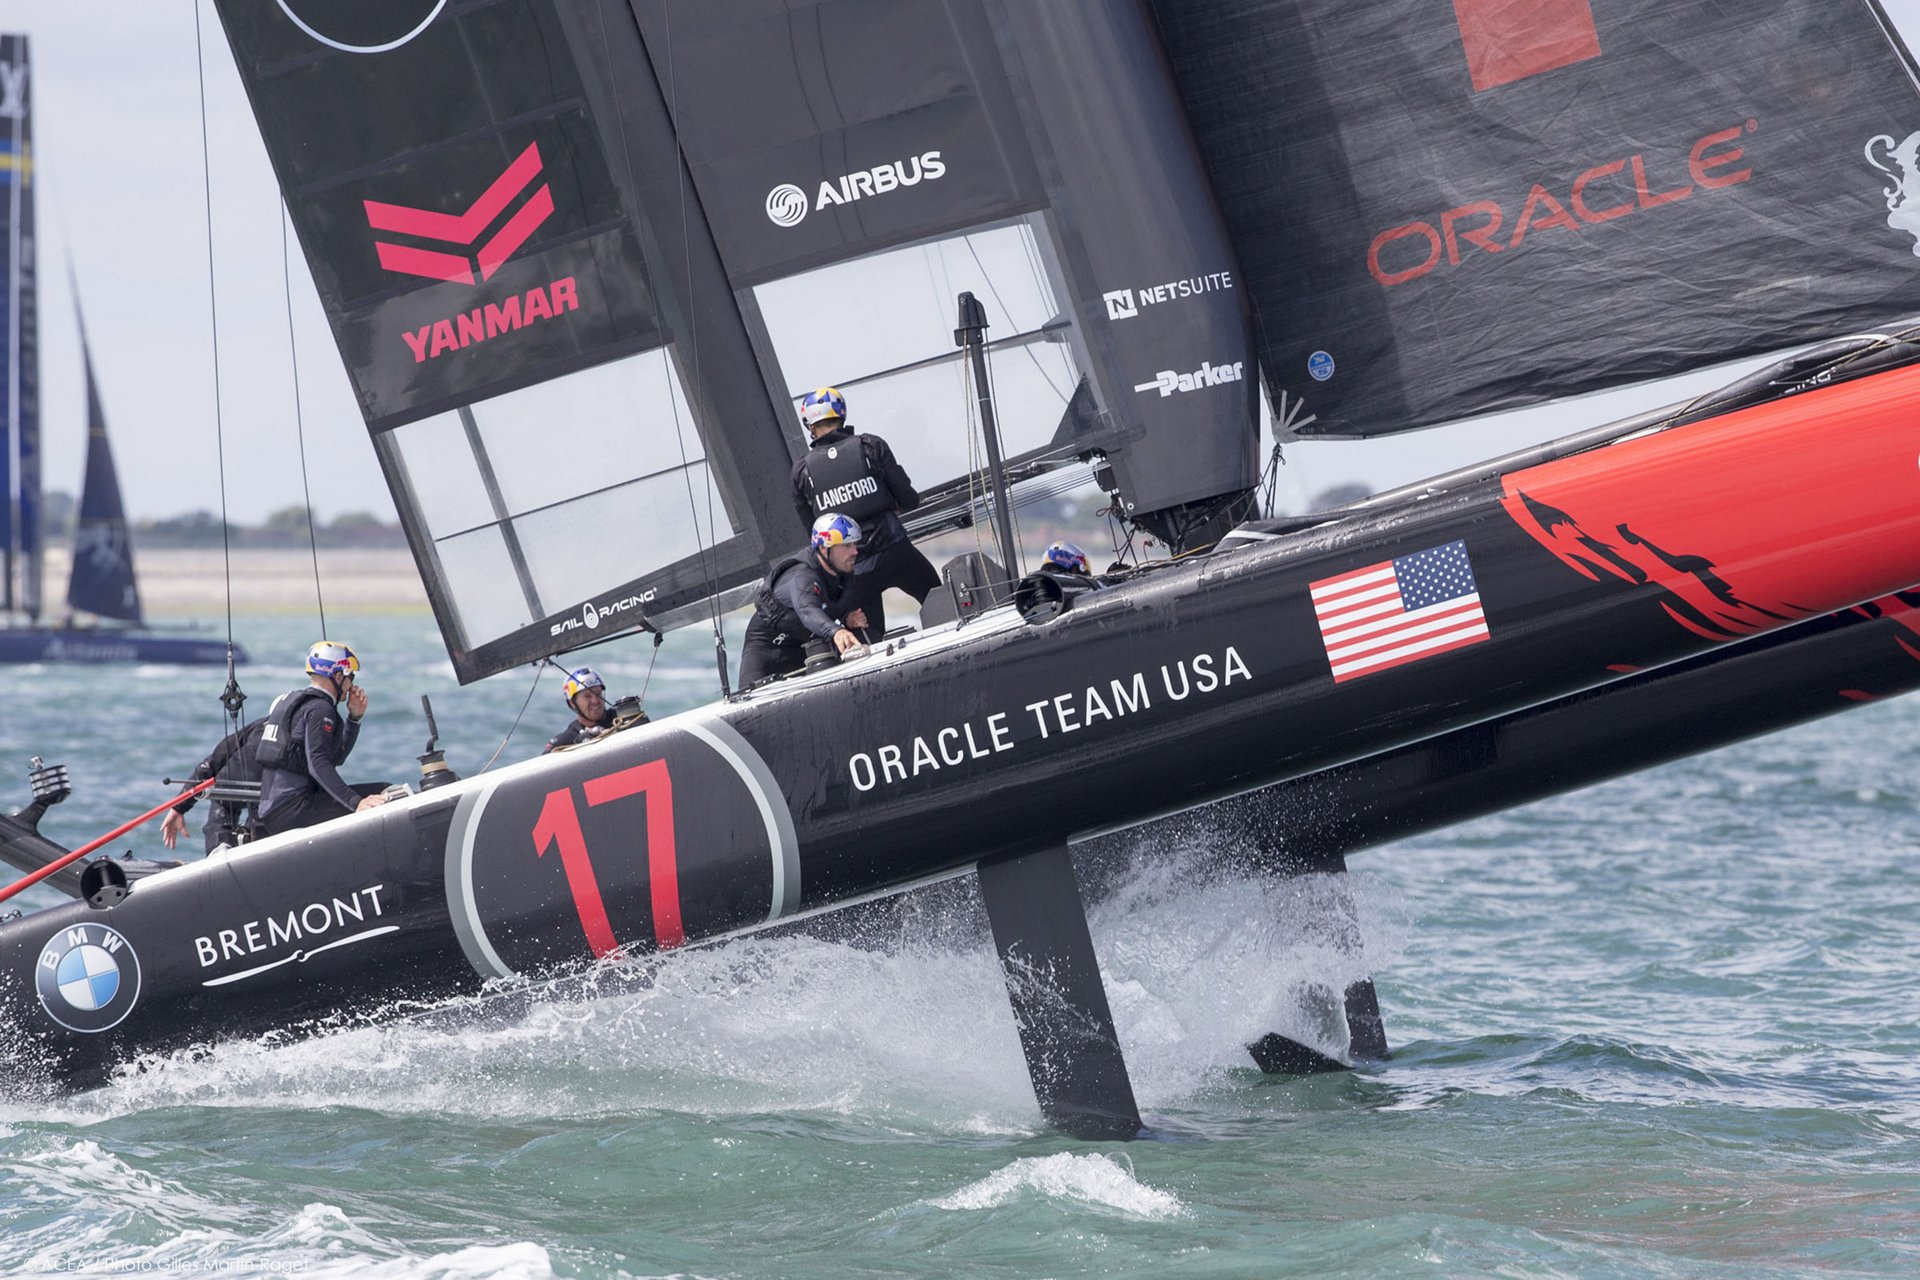 ORACLE TEAM USA_America's Cup World Series 3